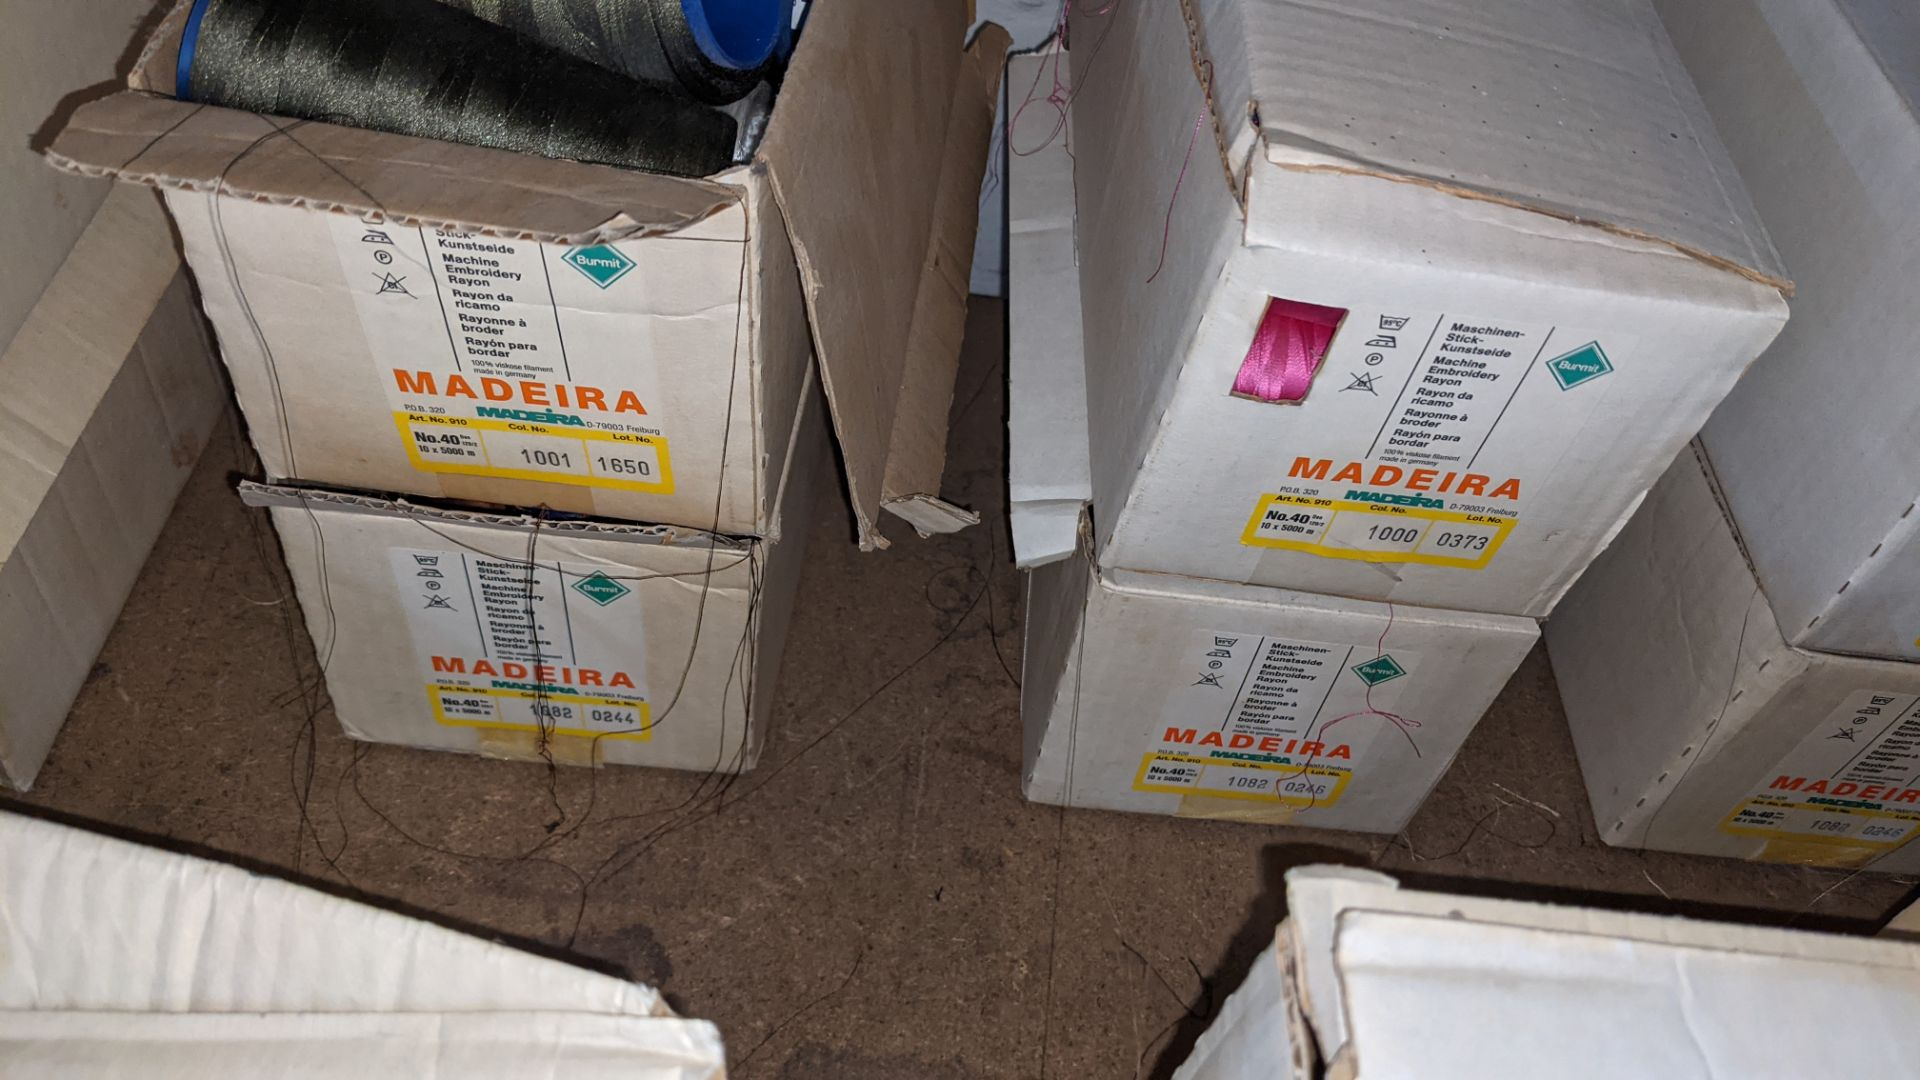 8 boxes of Madeira Burmit No. 40 rayon embroidery thread - Image 5 of 9